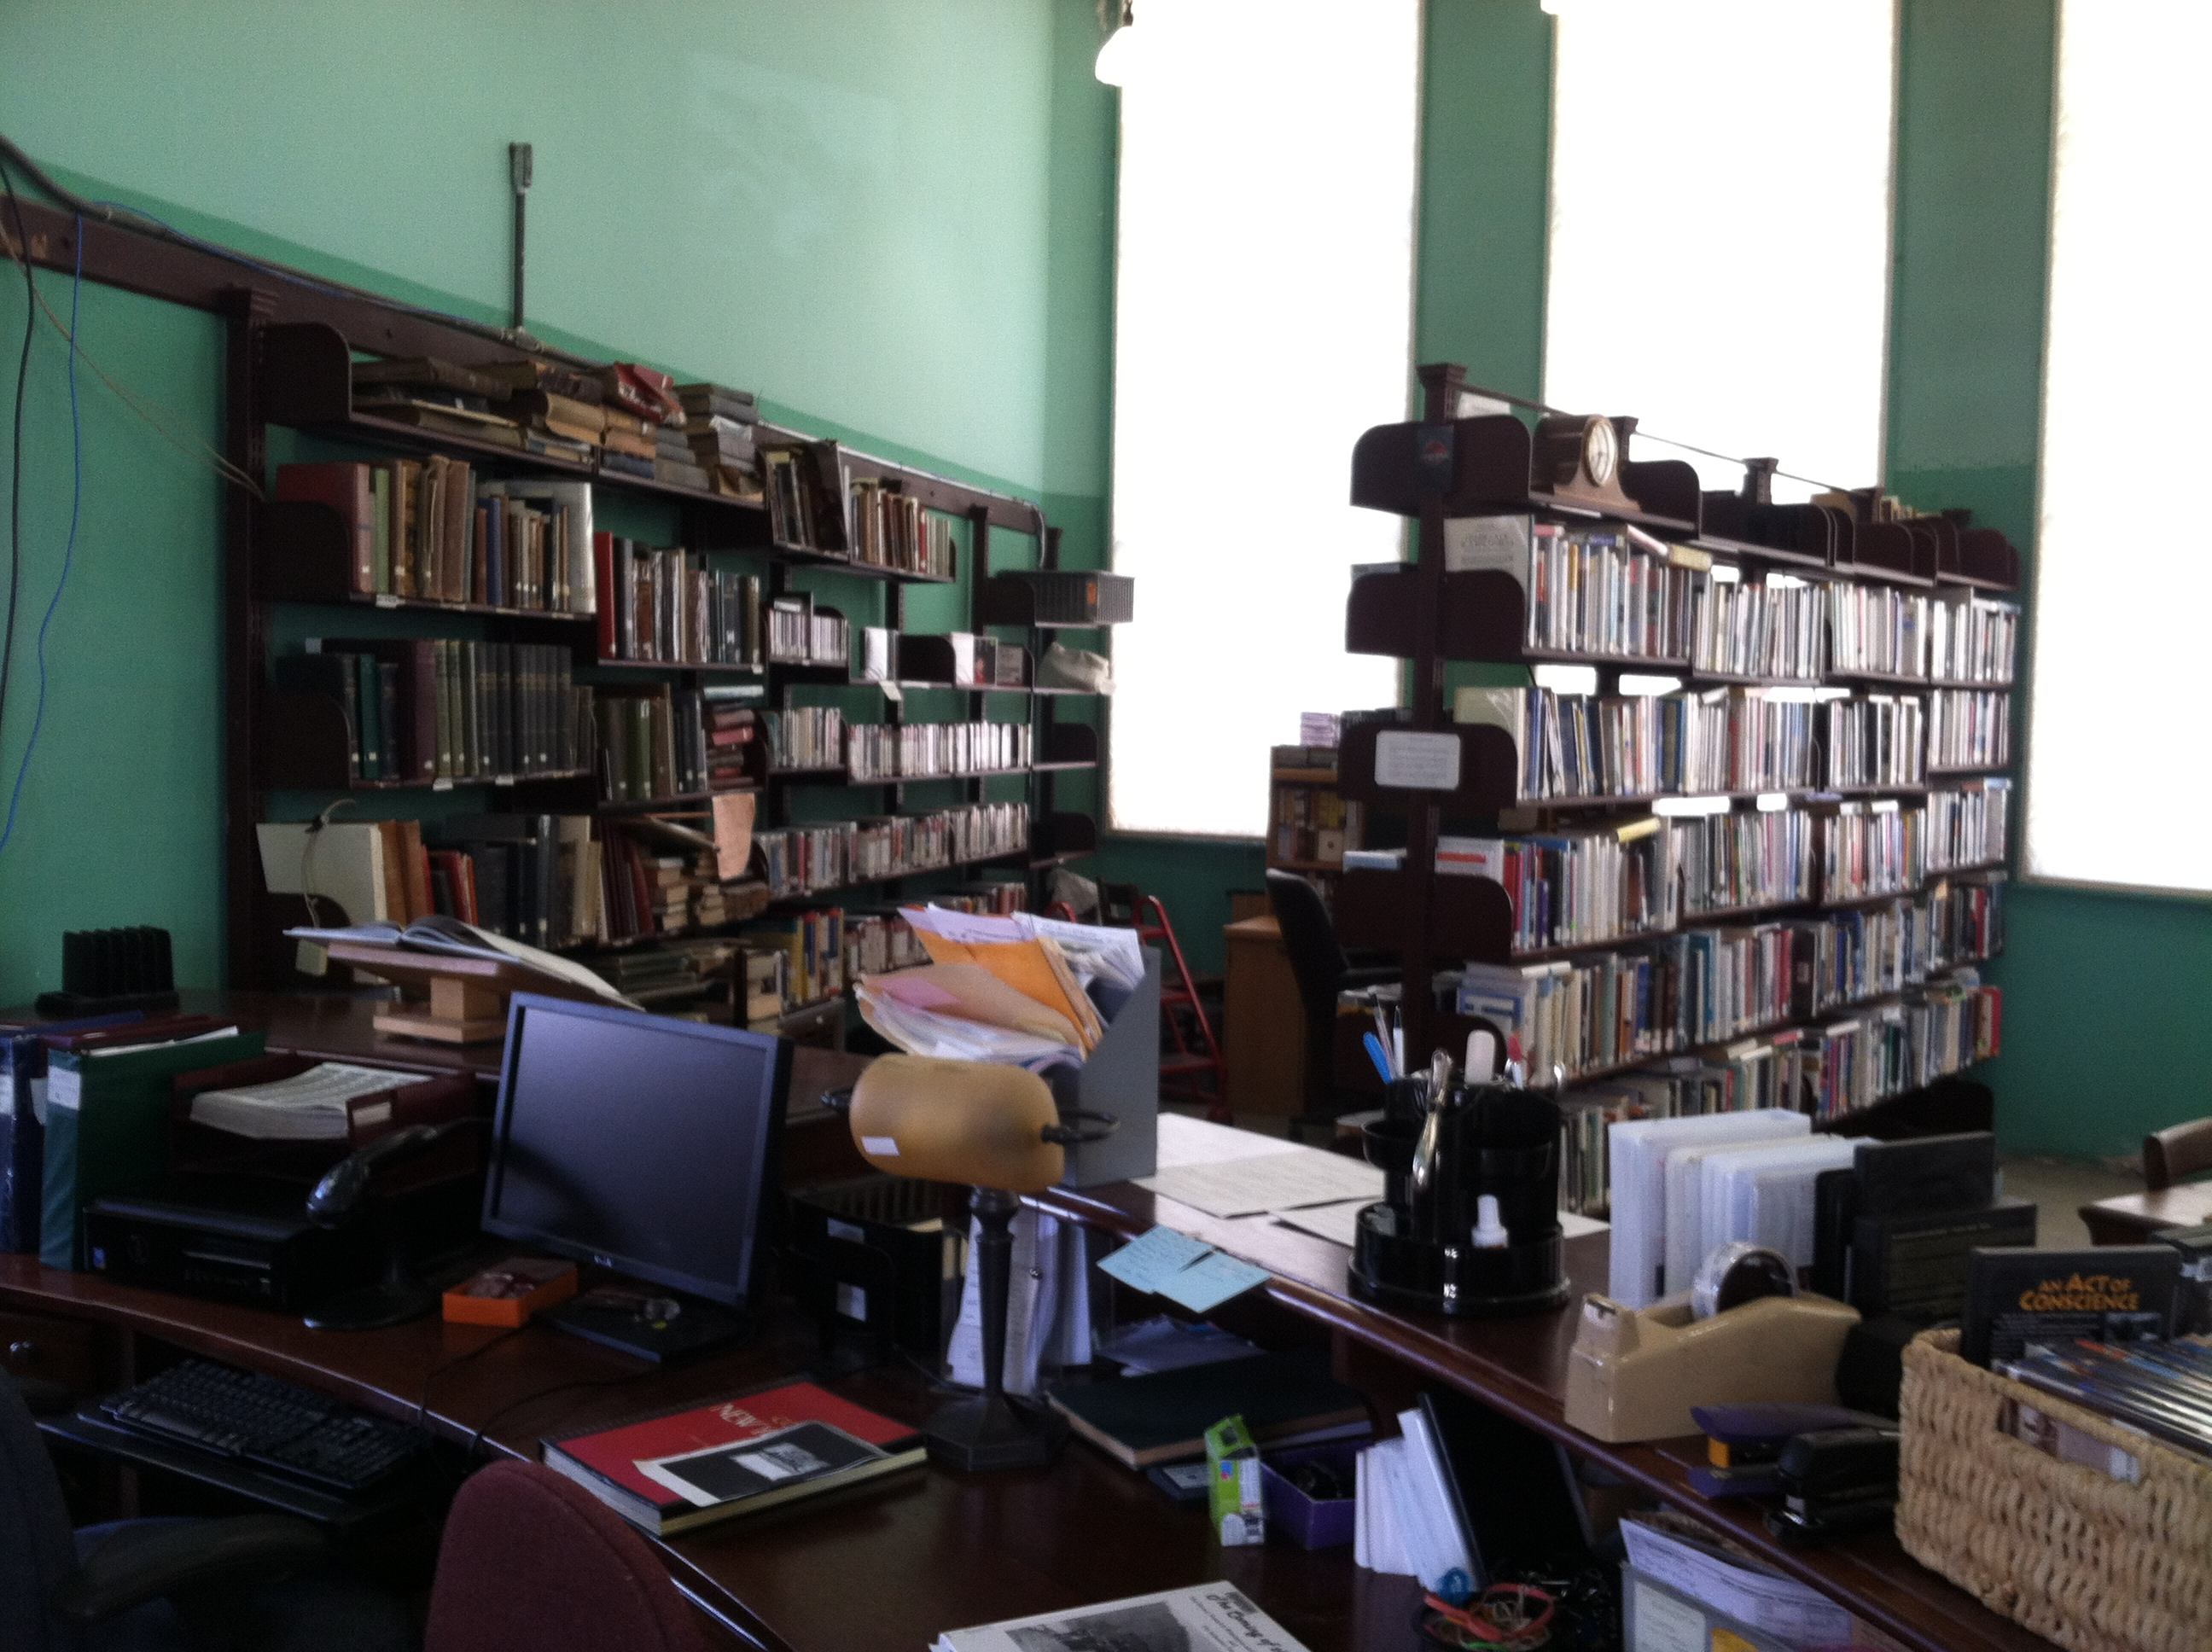 library image 1